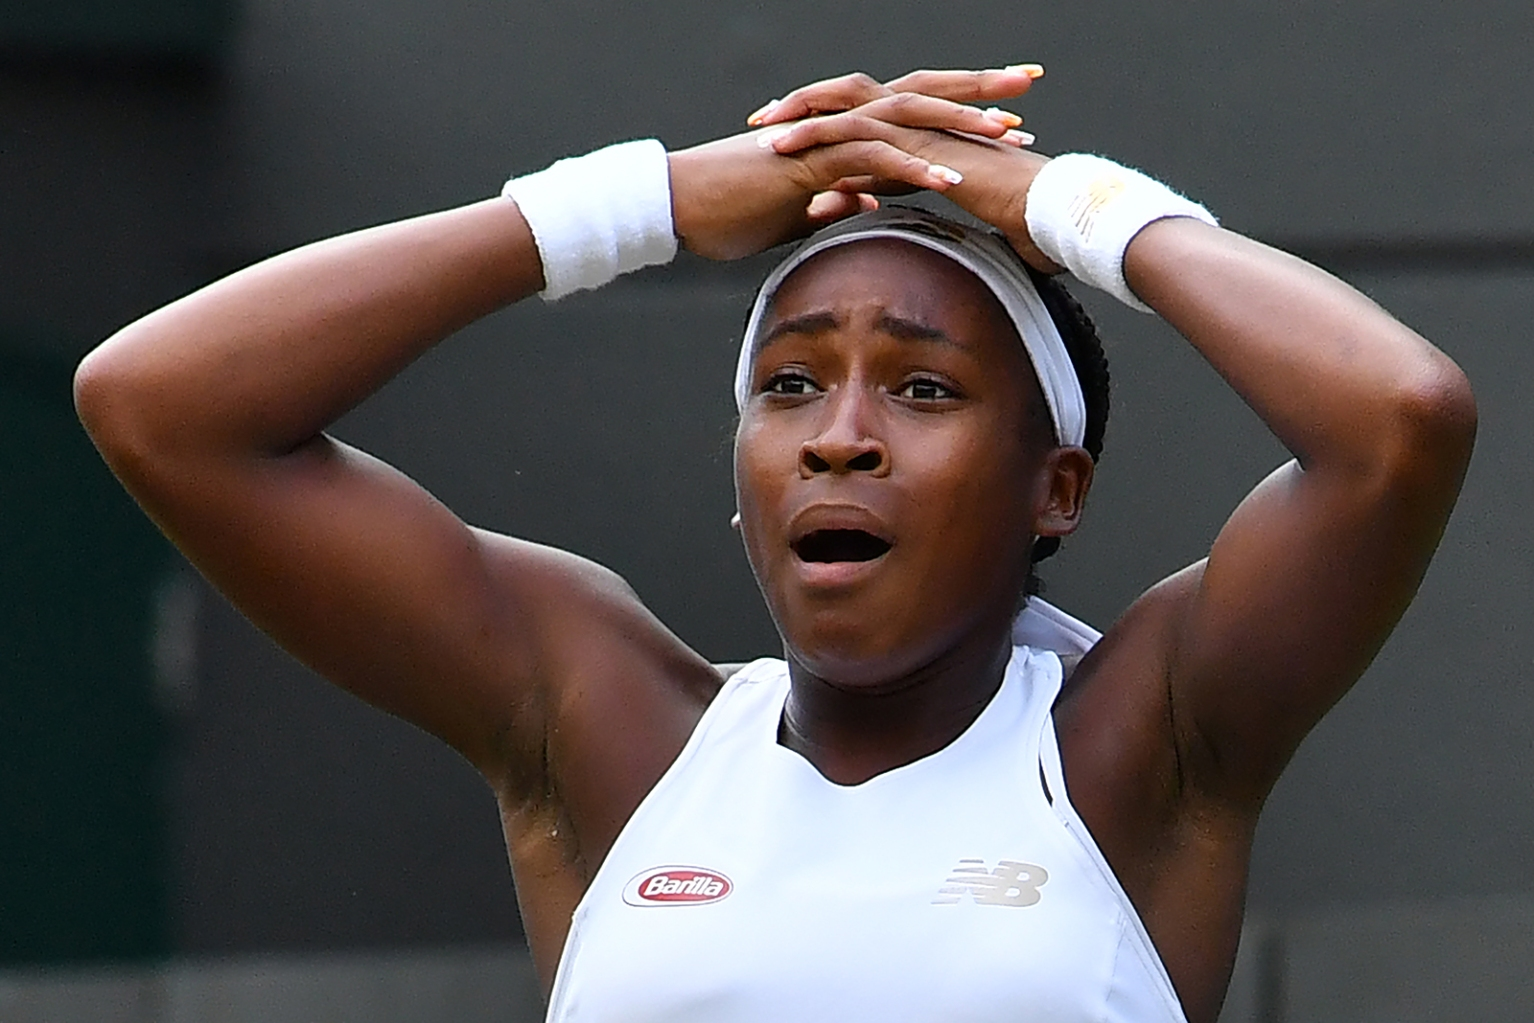 U.S. player Cori Gauff, a 15-year-old tennis prodigy who grew up idolizing he Williams sisters, celebrates beating Venus Williams during their women's singles first round match at Wimbledon on July 1. BEN STANSALL/AFP/Getty Images